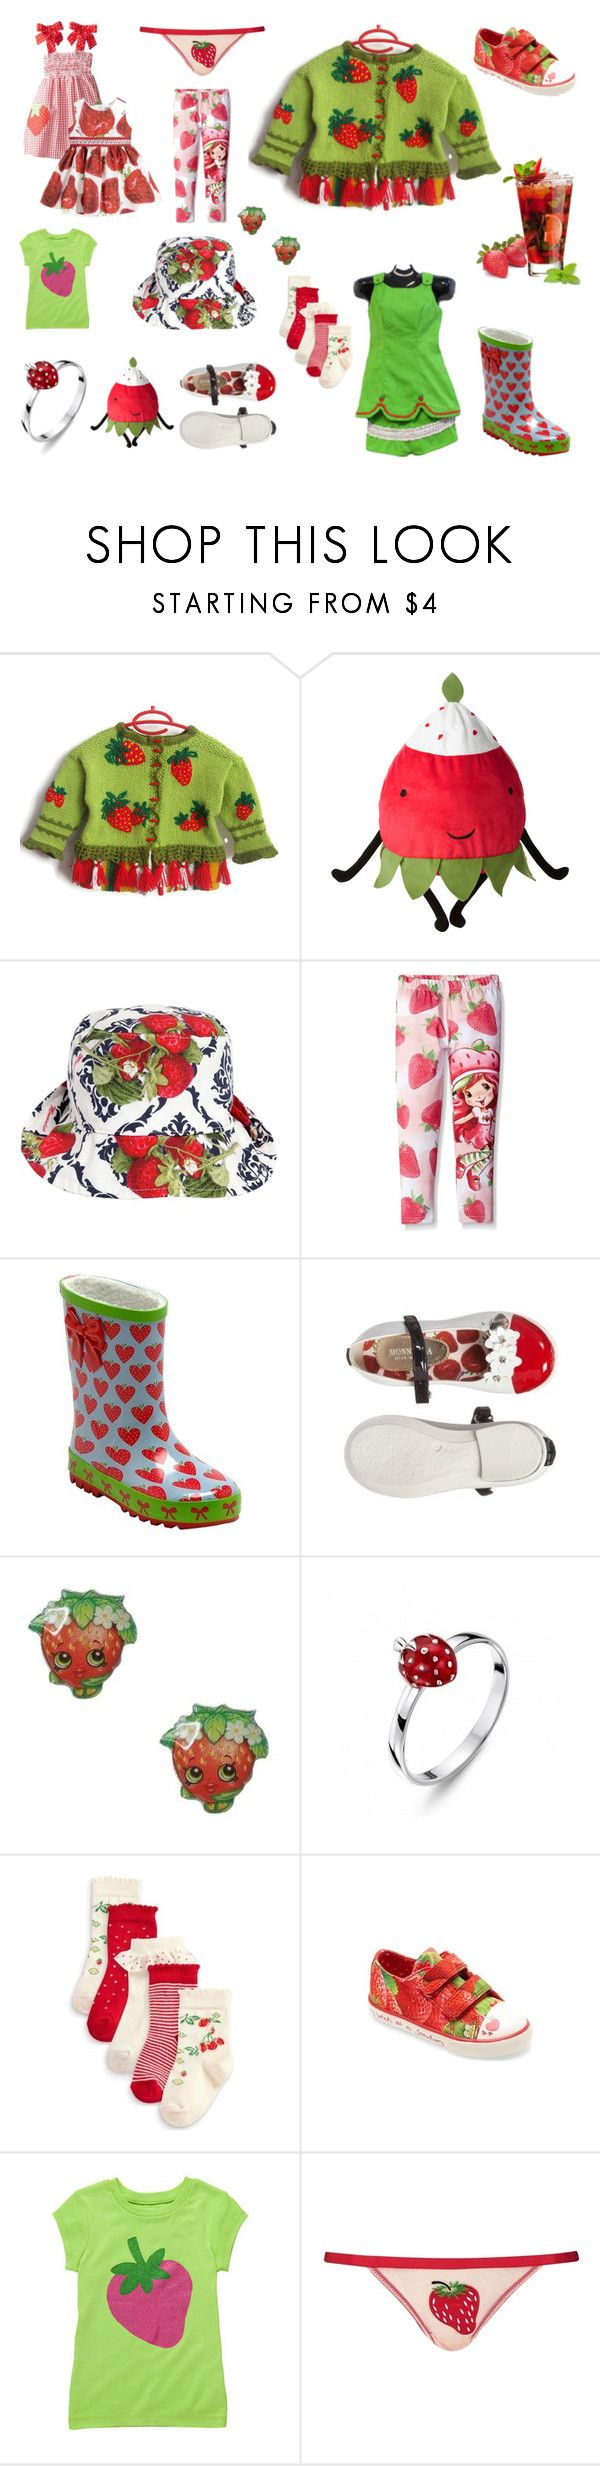 """""""Strawberry Girlish"""" by savenna-zlatchkine on Polyvore featuring Monnalisa, Start-rite, claire's, Topshop, Spring, girl, strawberry, toddler and children"""